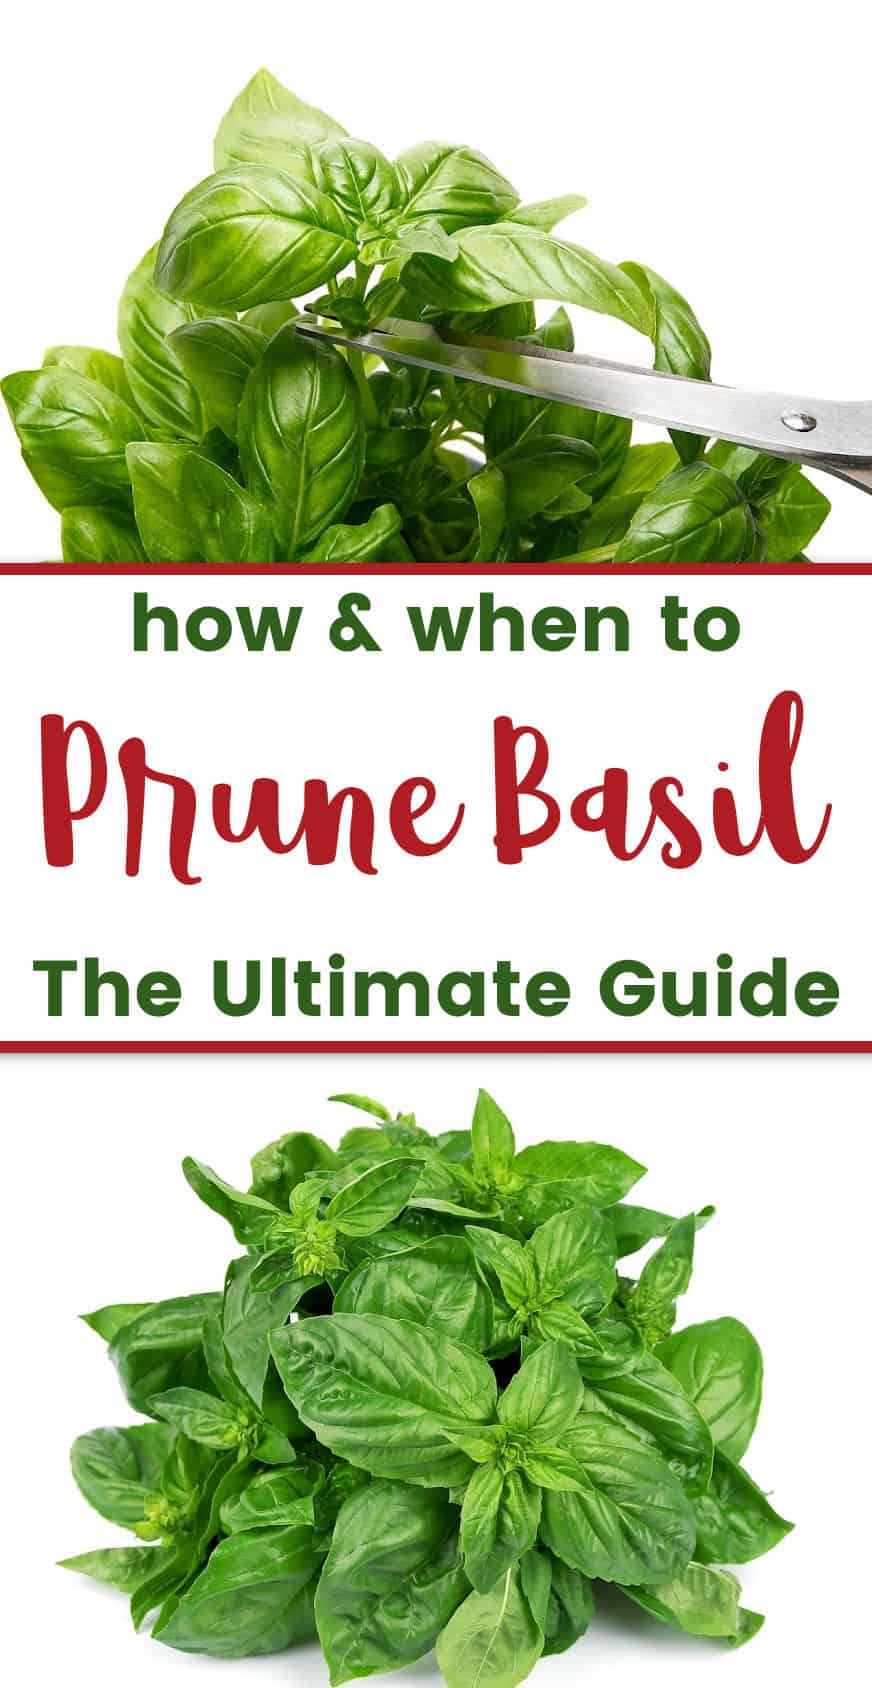 photo of basil plant being pruned with scissors with text overlay How & When to Prune Basil - the Ultimate Guide